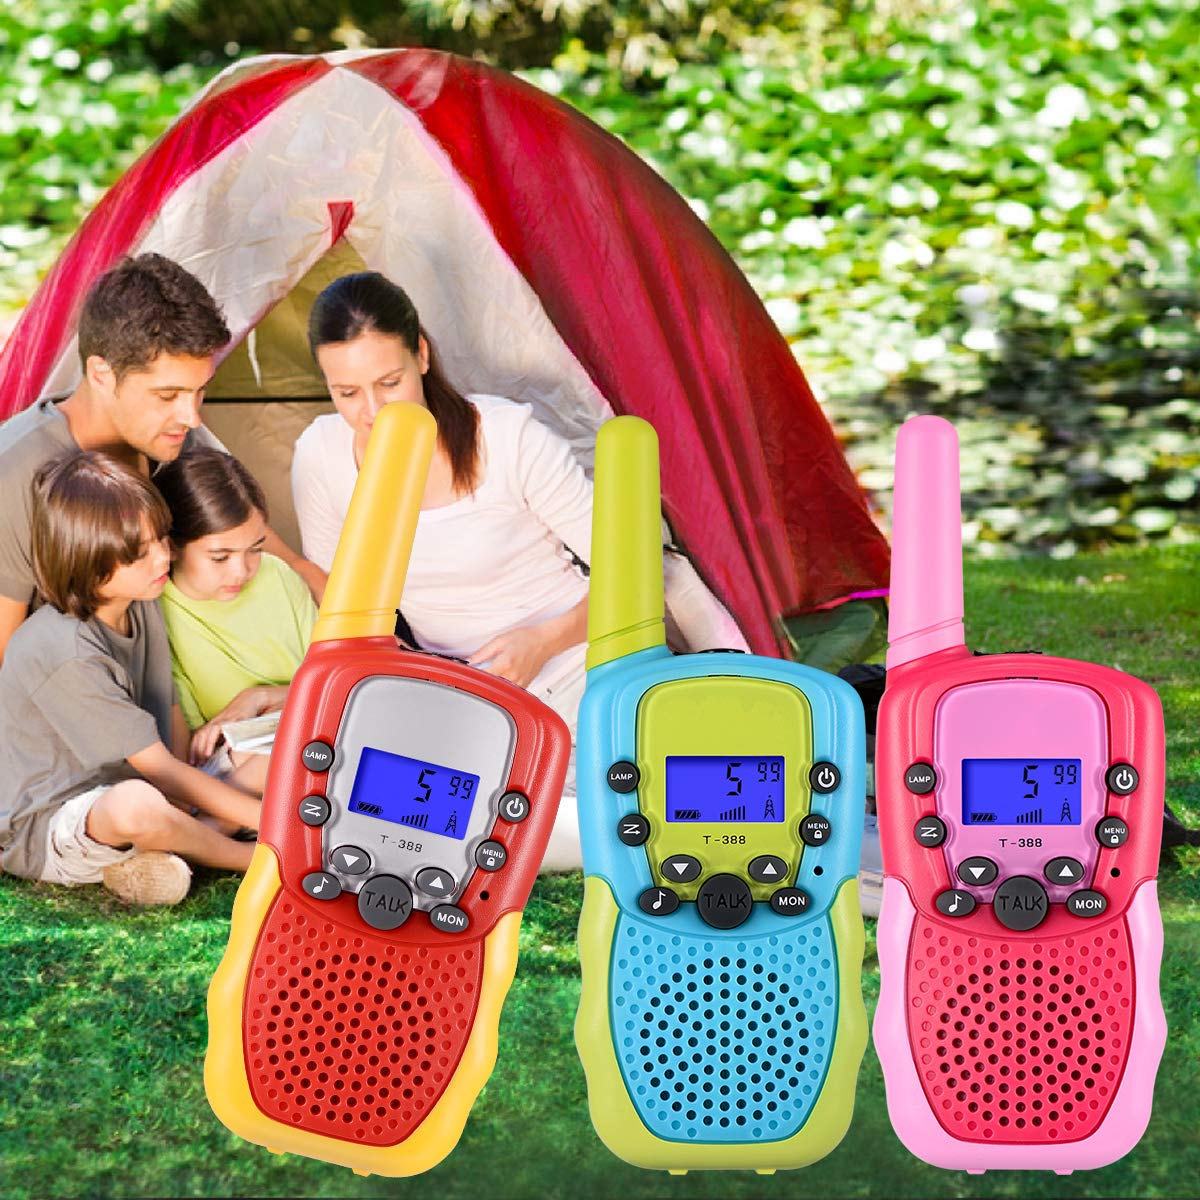 SnowCinda 3 Pack Walkie Talkies for Kids , 22 Channels 2 Way Radio Toy with Backlit LCD Flashlight, 3 Miles Range for Outside Adventures, Camping, Hiking, Toys for 3-12 Years Old Boys or Girls by SnowCinda (Image #6)